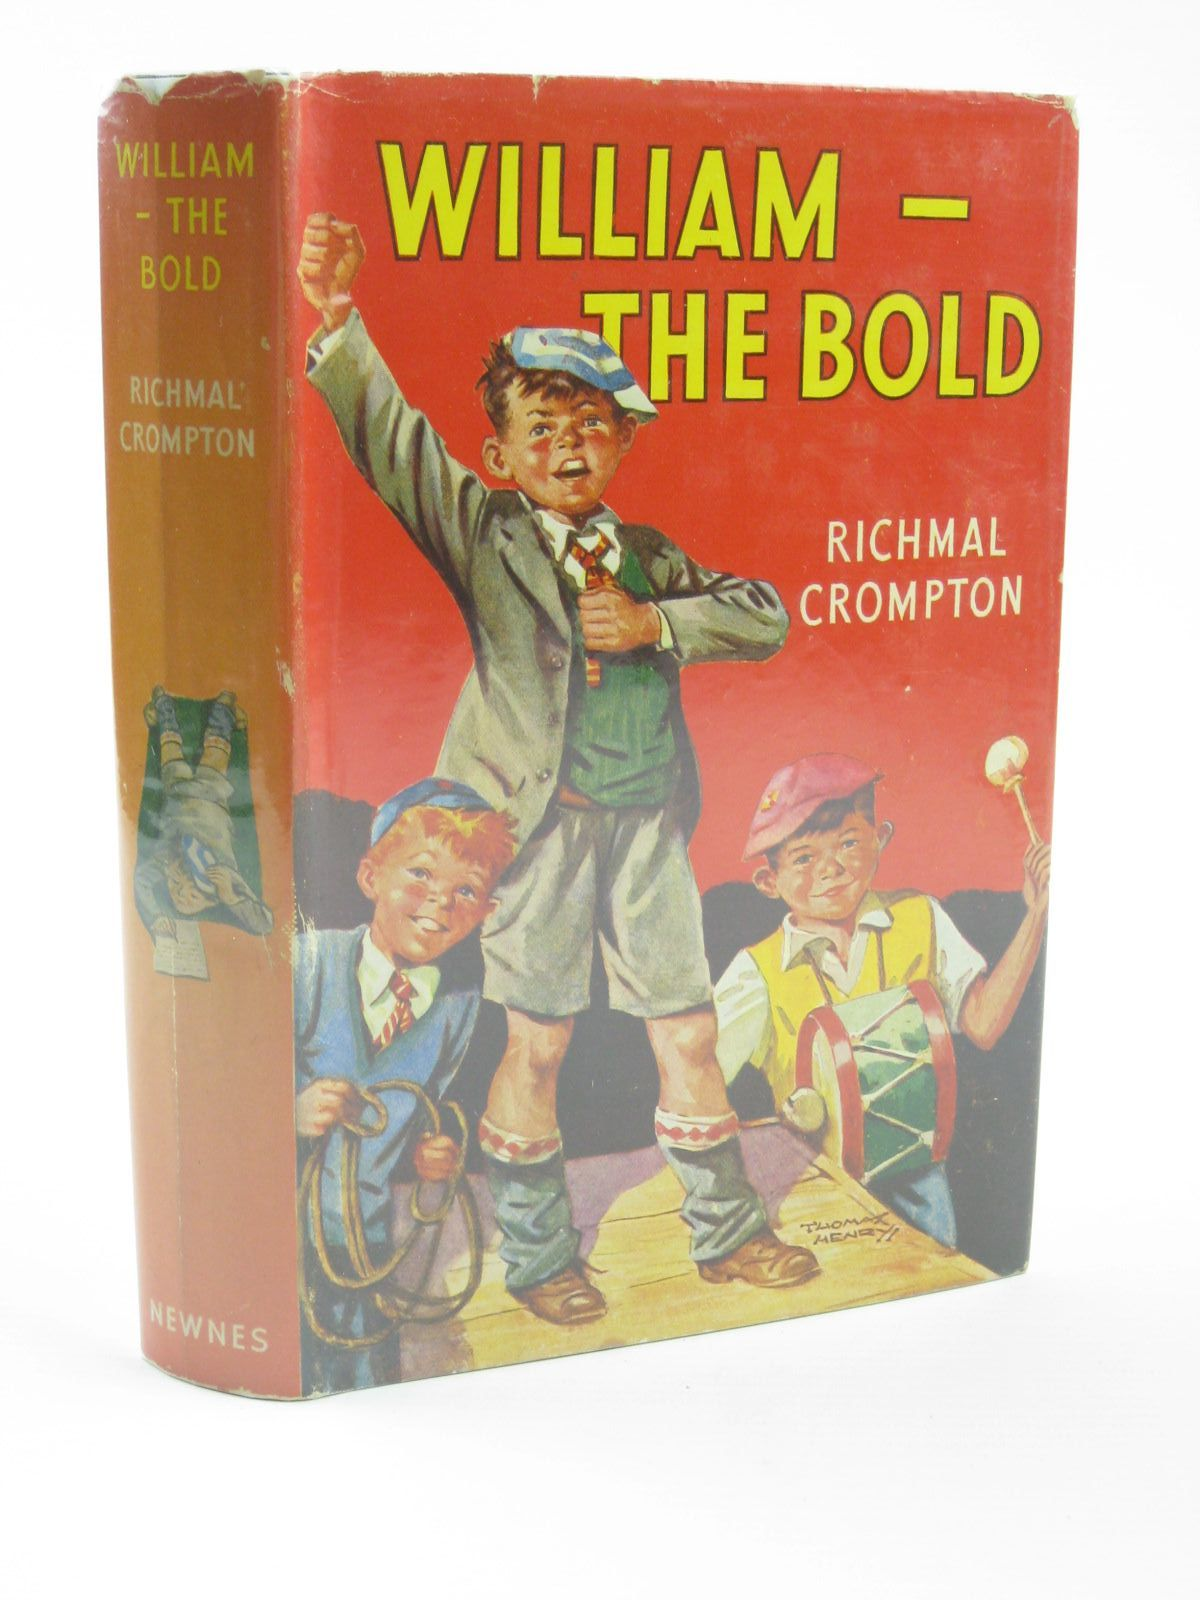 Cover of WILLIAM THE BOLD by Richmal Crompton